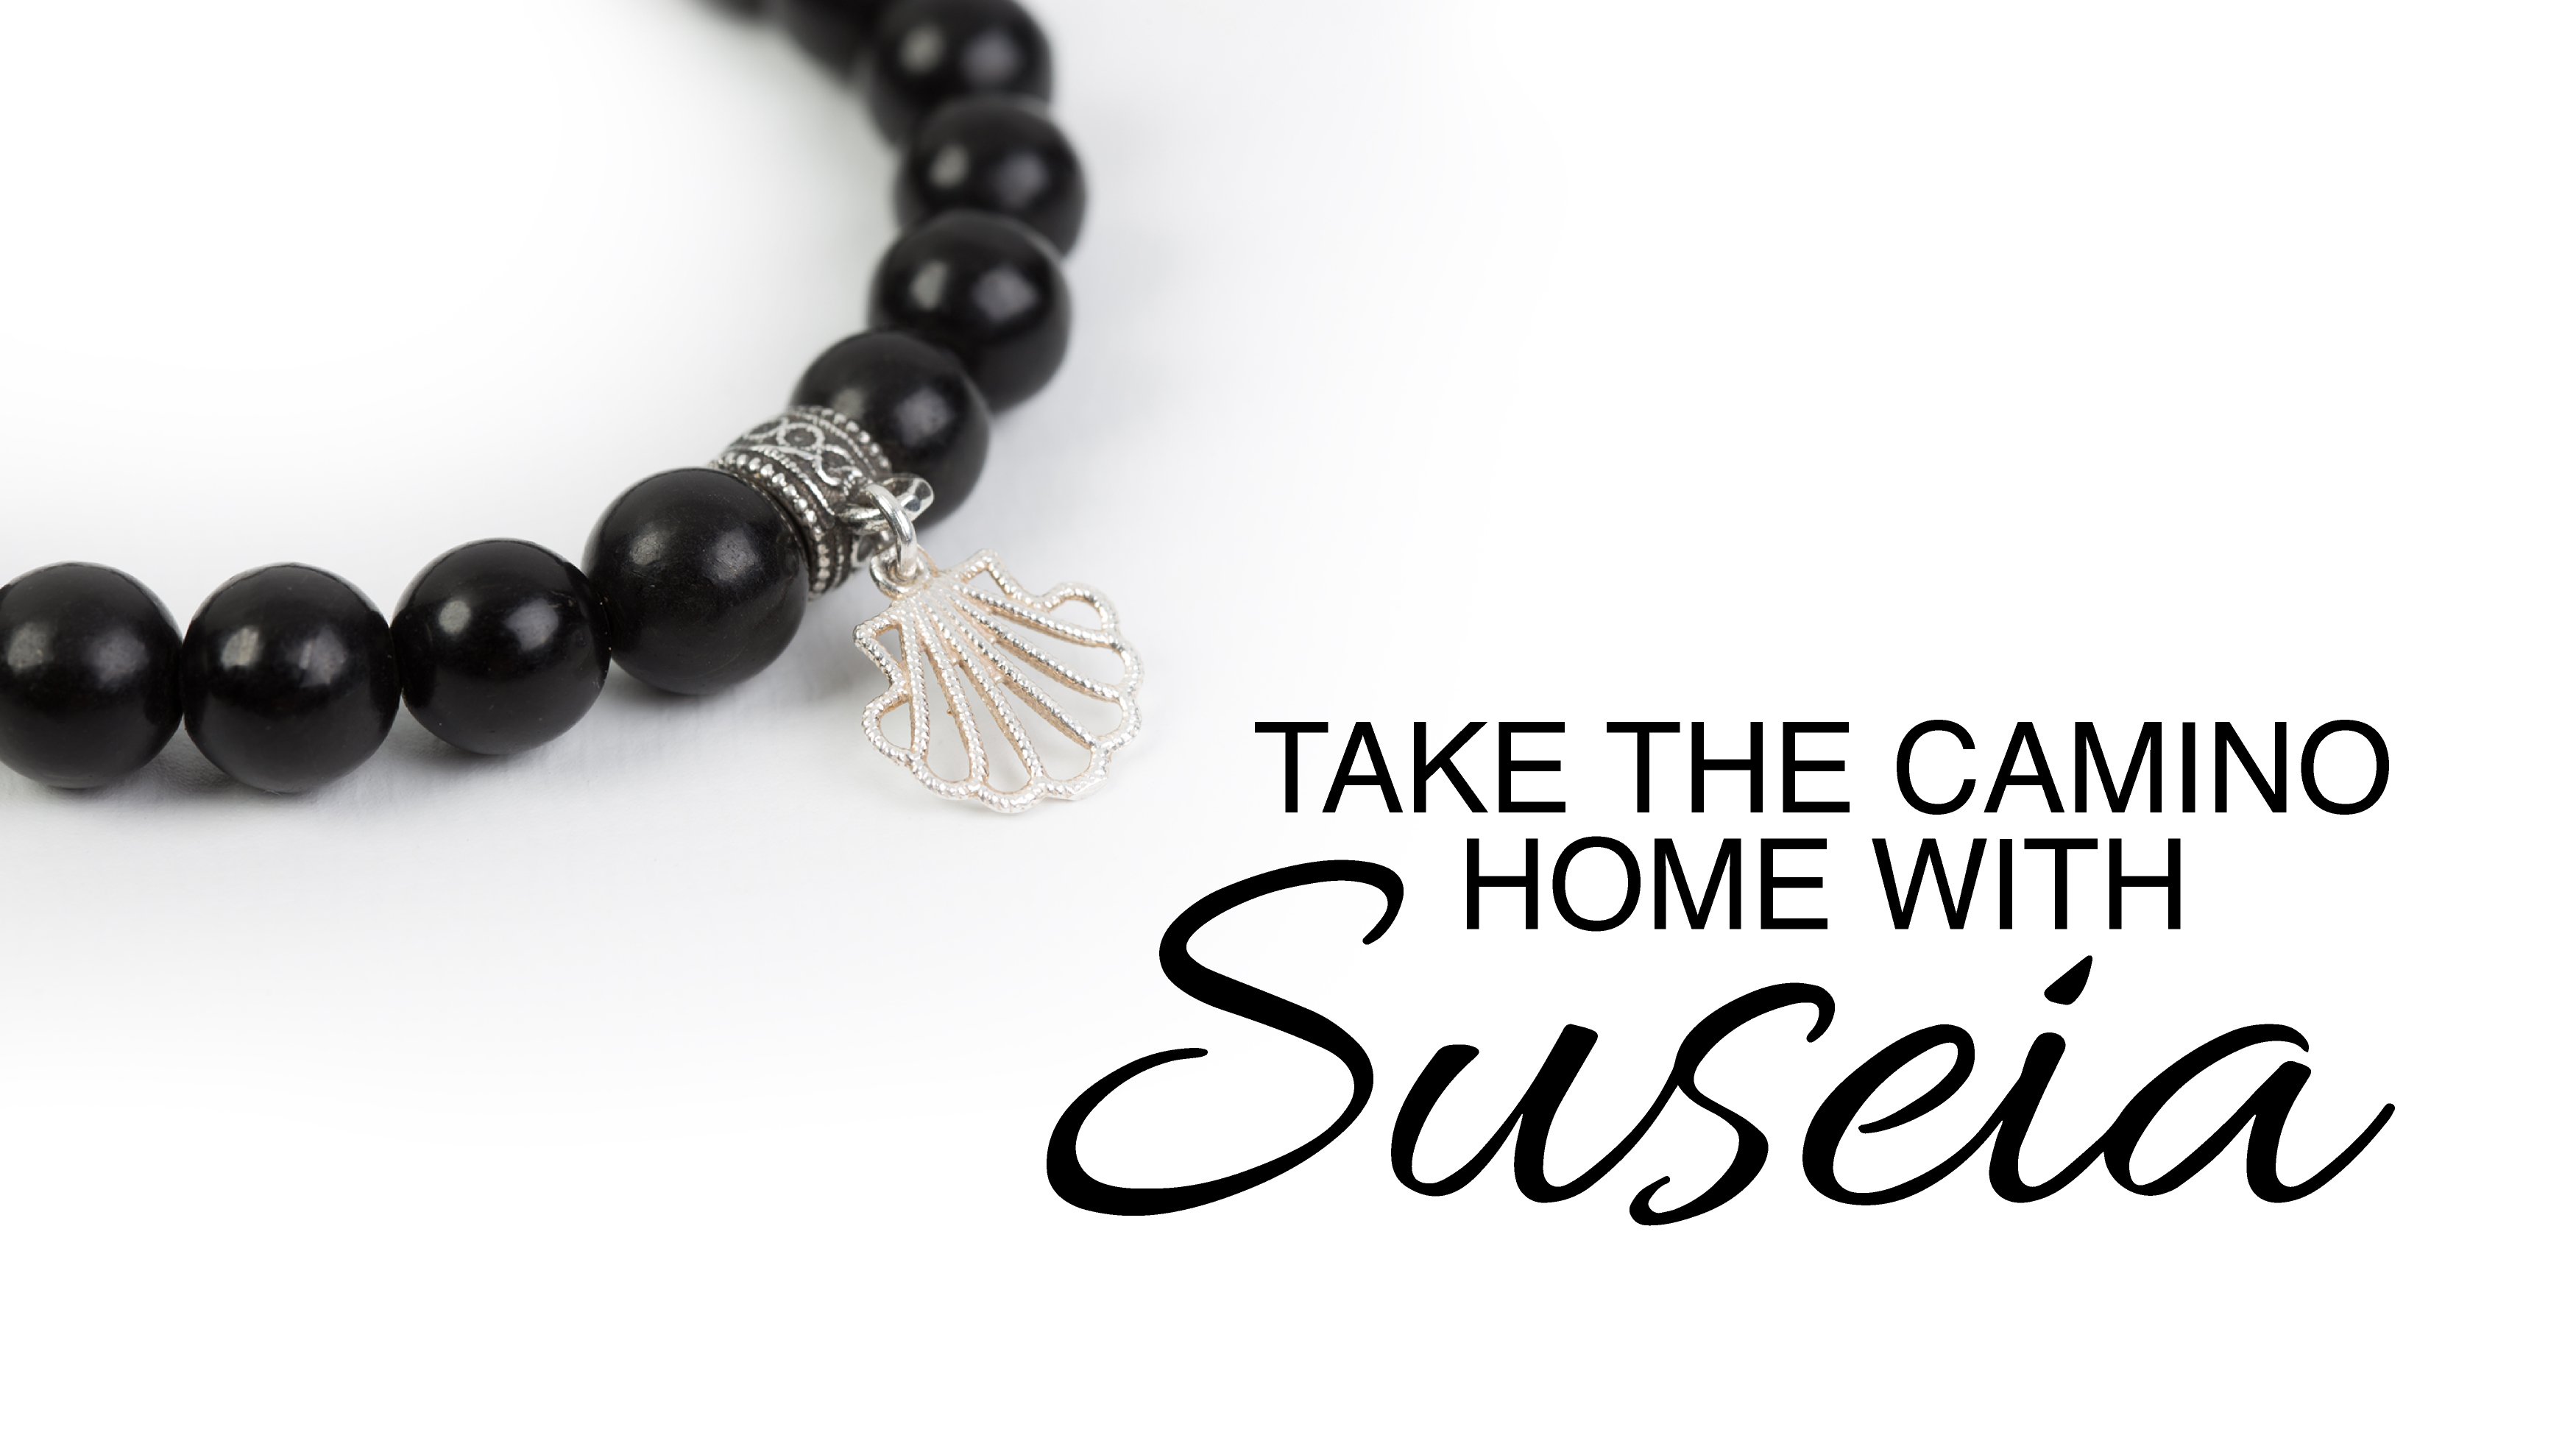 Would you like to take a piece of the Camino home with you?